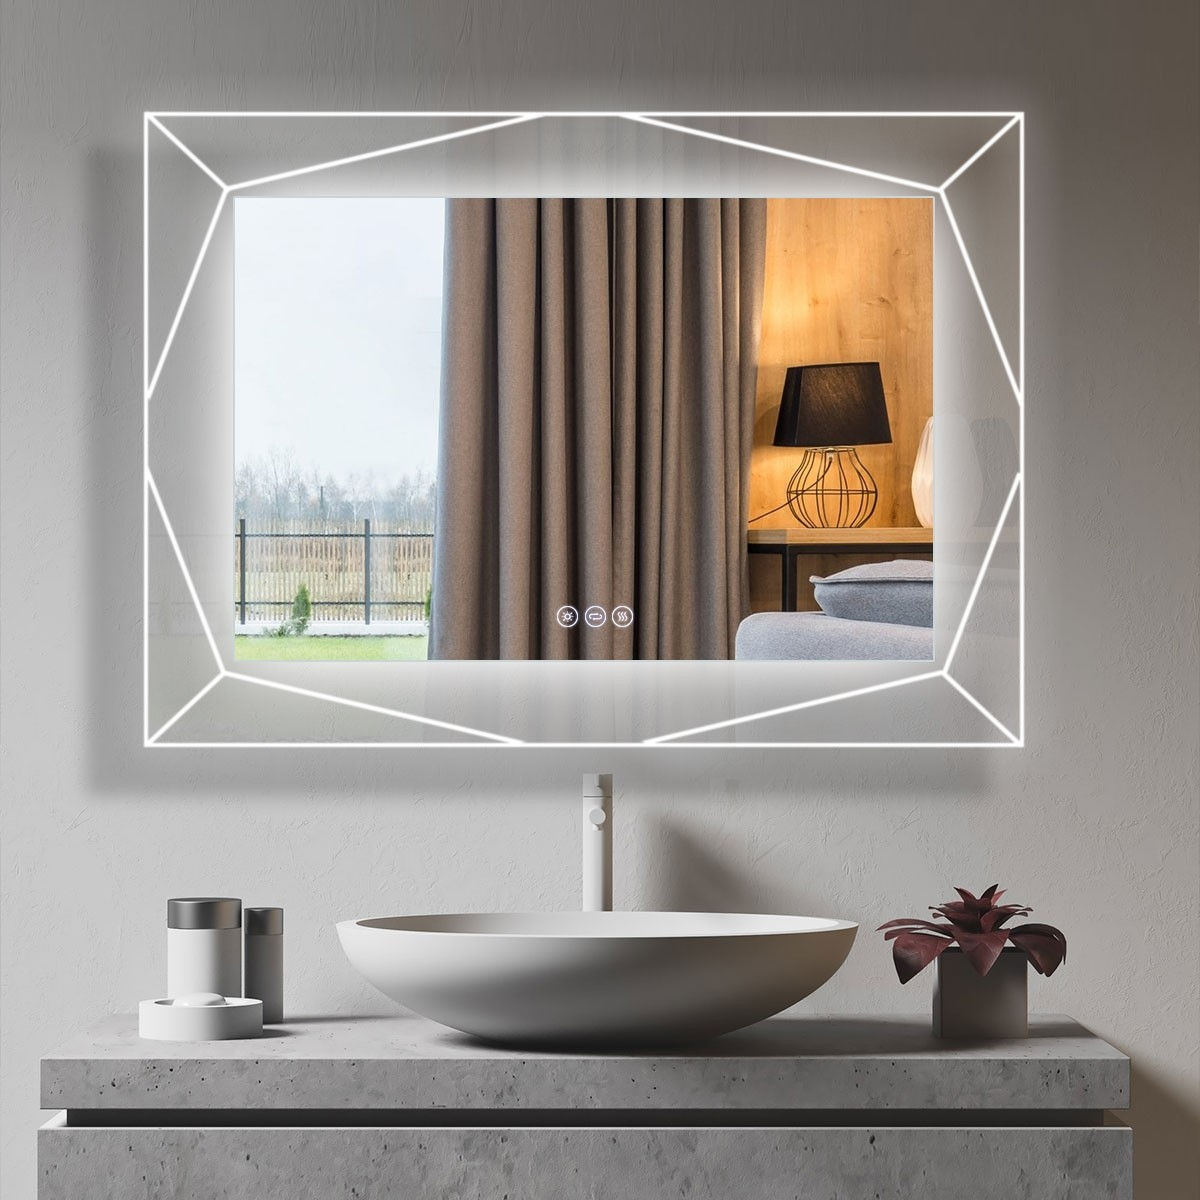 DECORAPORT 48 x 36 Inch LED Bathroom Mirror with Touch Button, Bluetooth Speaker, Tri-Color Lights, Anti-fog, Dimmable, Vertical Mount(D1516-4836AB)